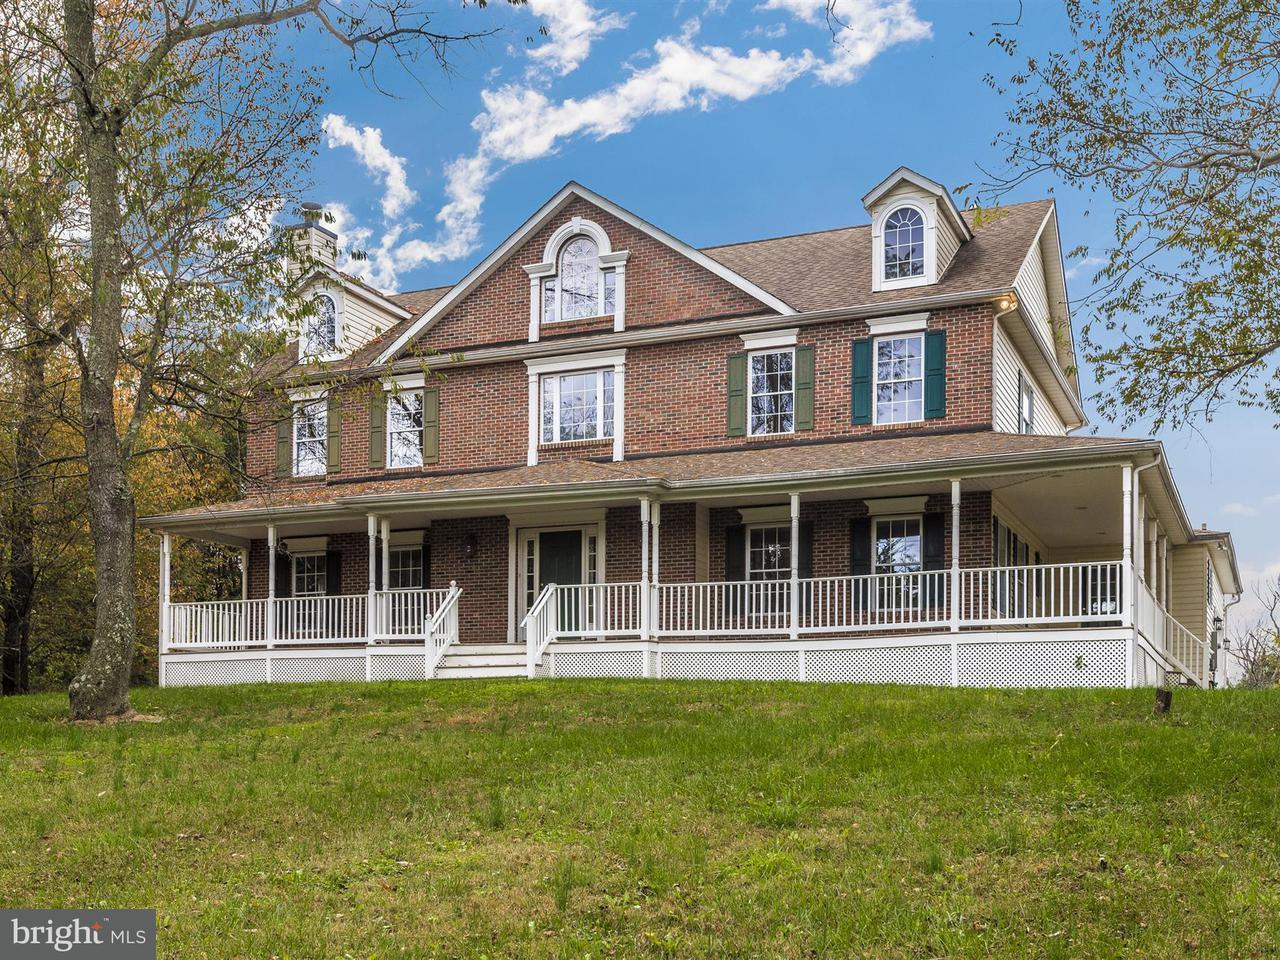 Single Family Home for Sale at 9408 OAK ORCHARD Court 9408 OAK ORCHARD Court New Windsor, Maryland 21776 United States